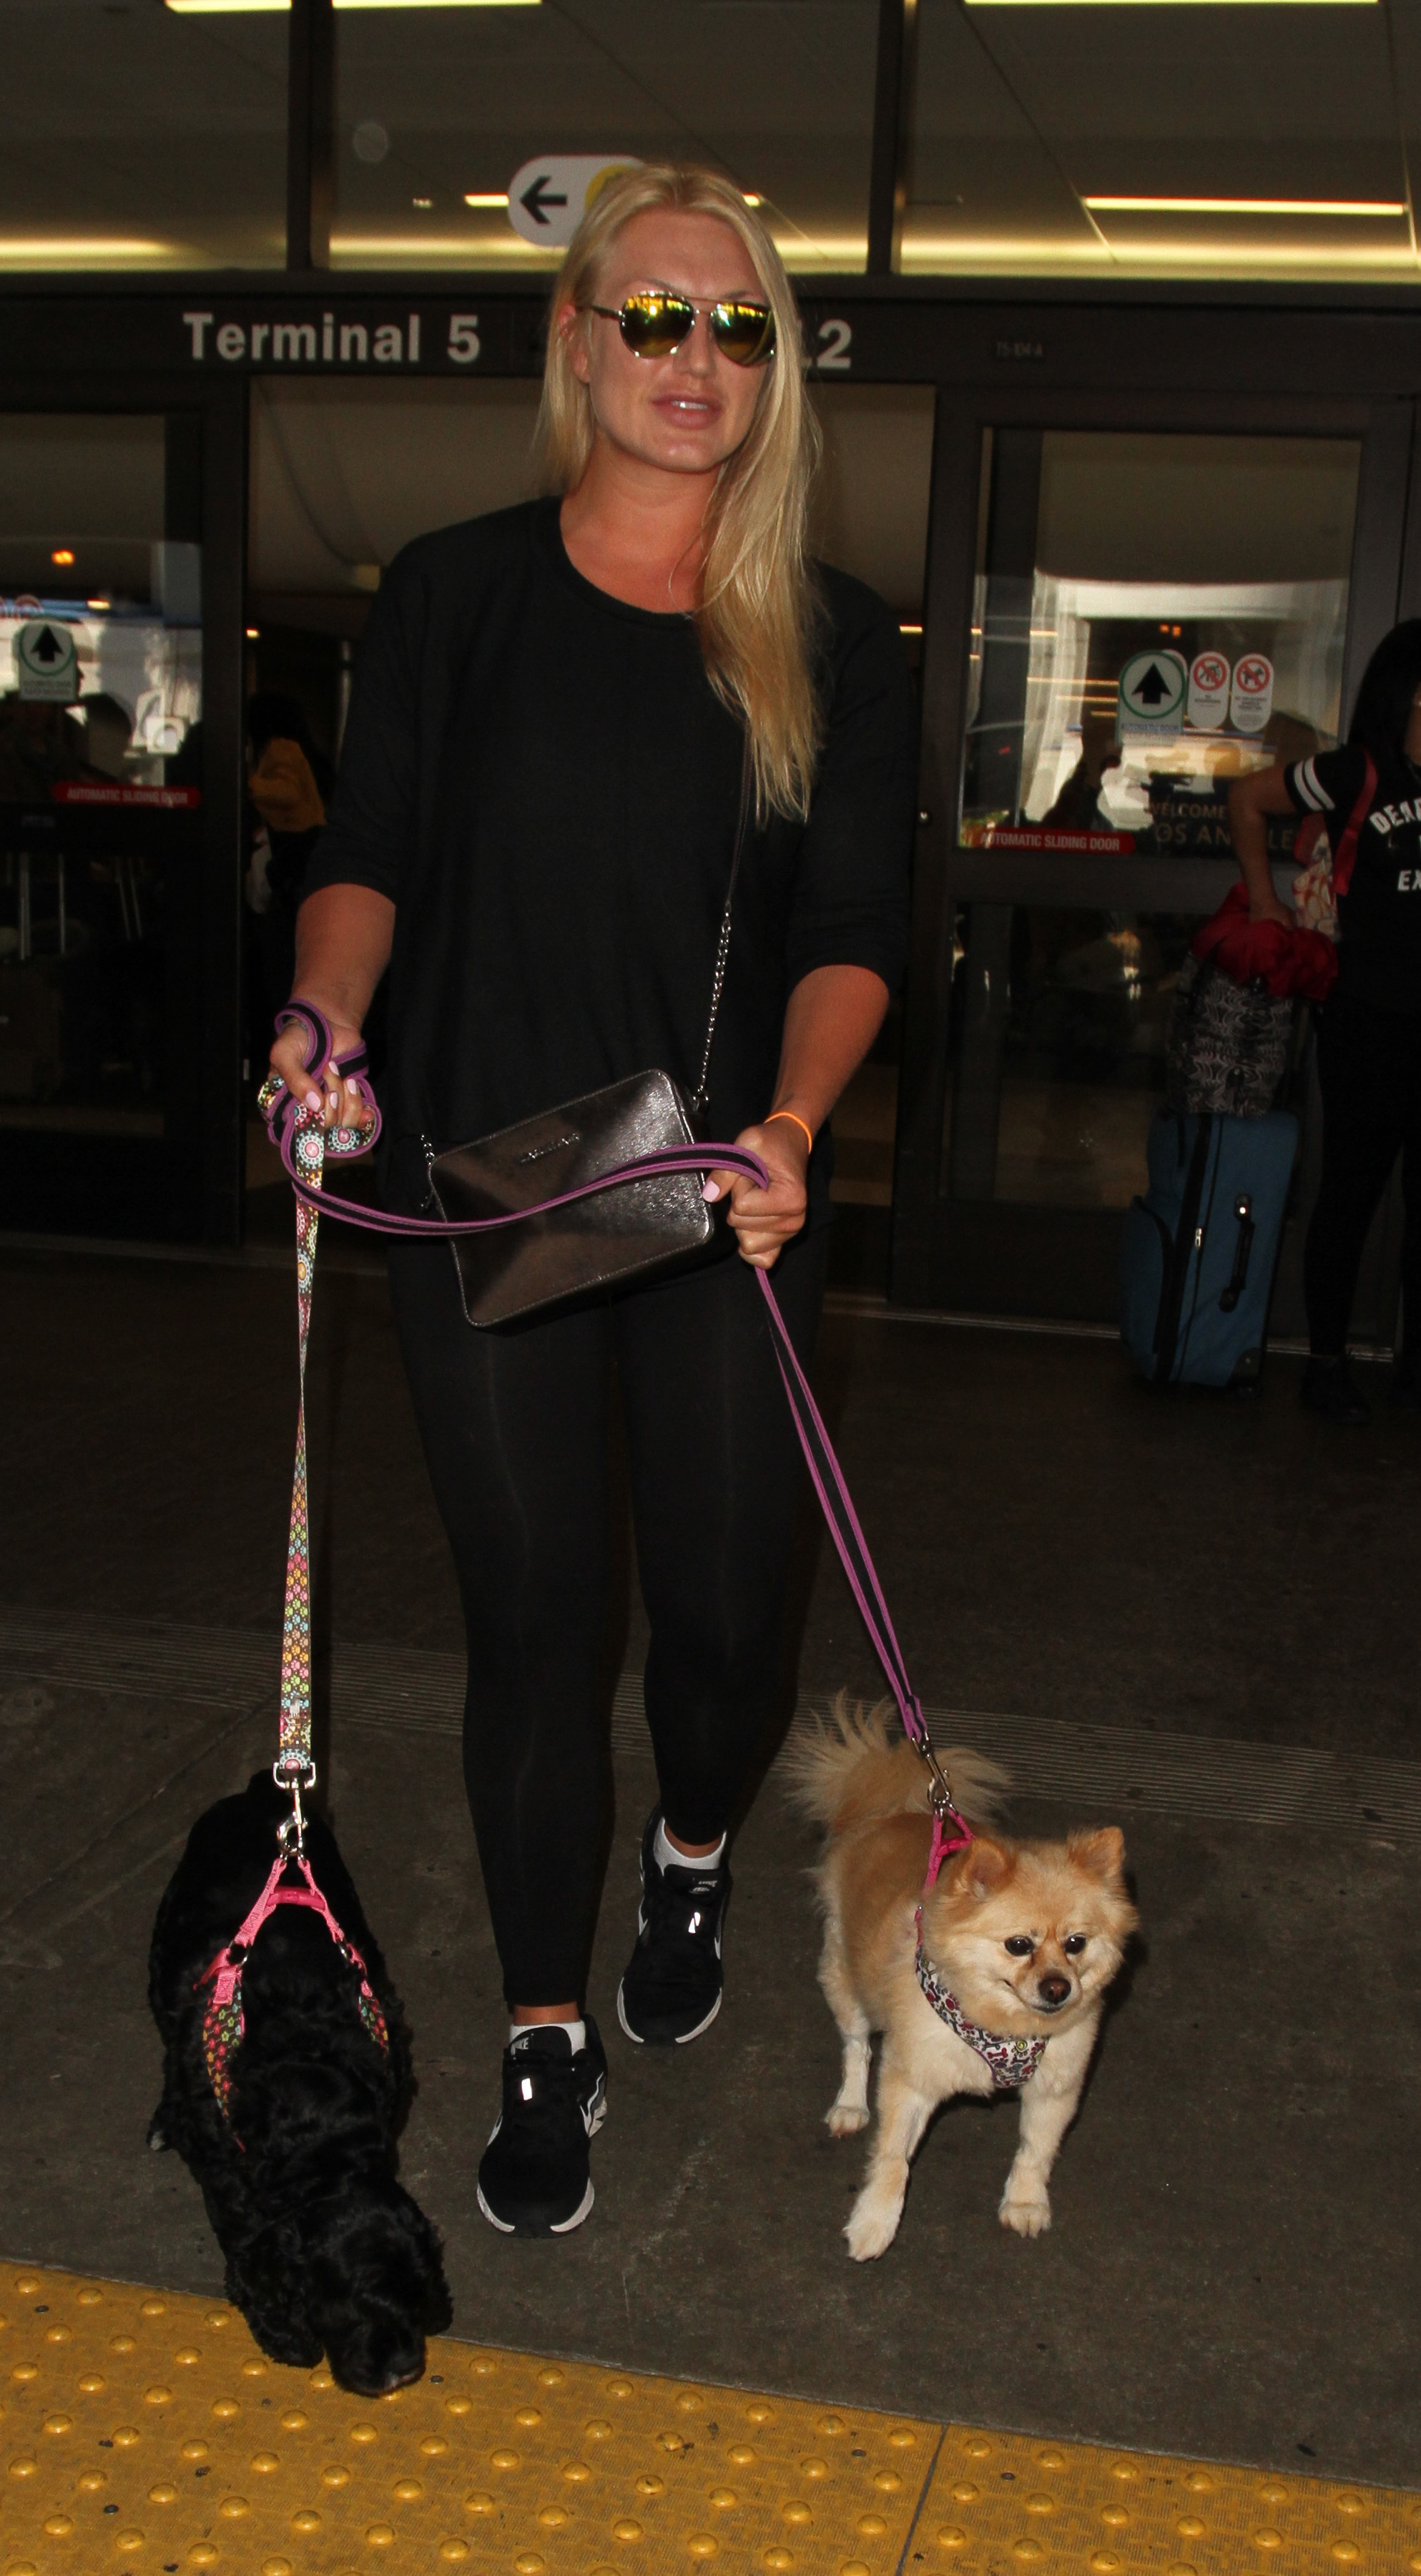 Brooke Hogan arrives at the Los Angeles International Airport with her dogs in Los Angeles on March 31, 2016.